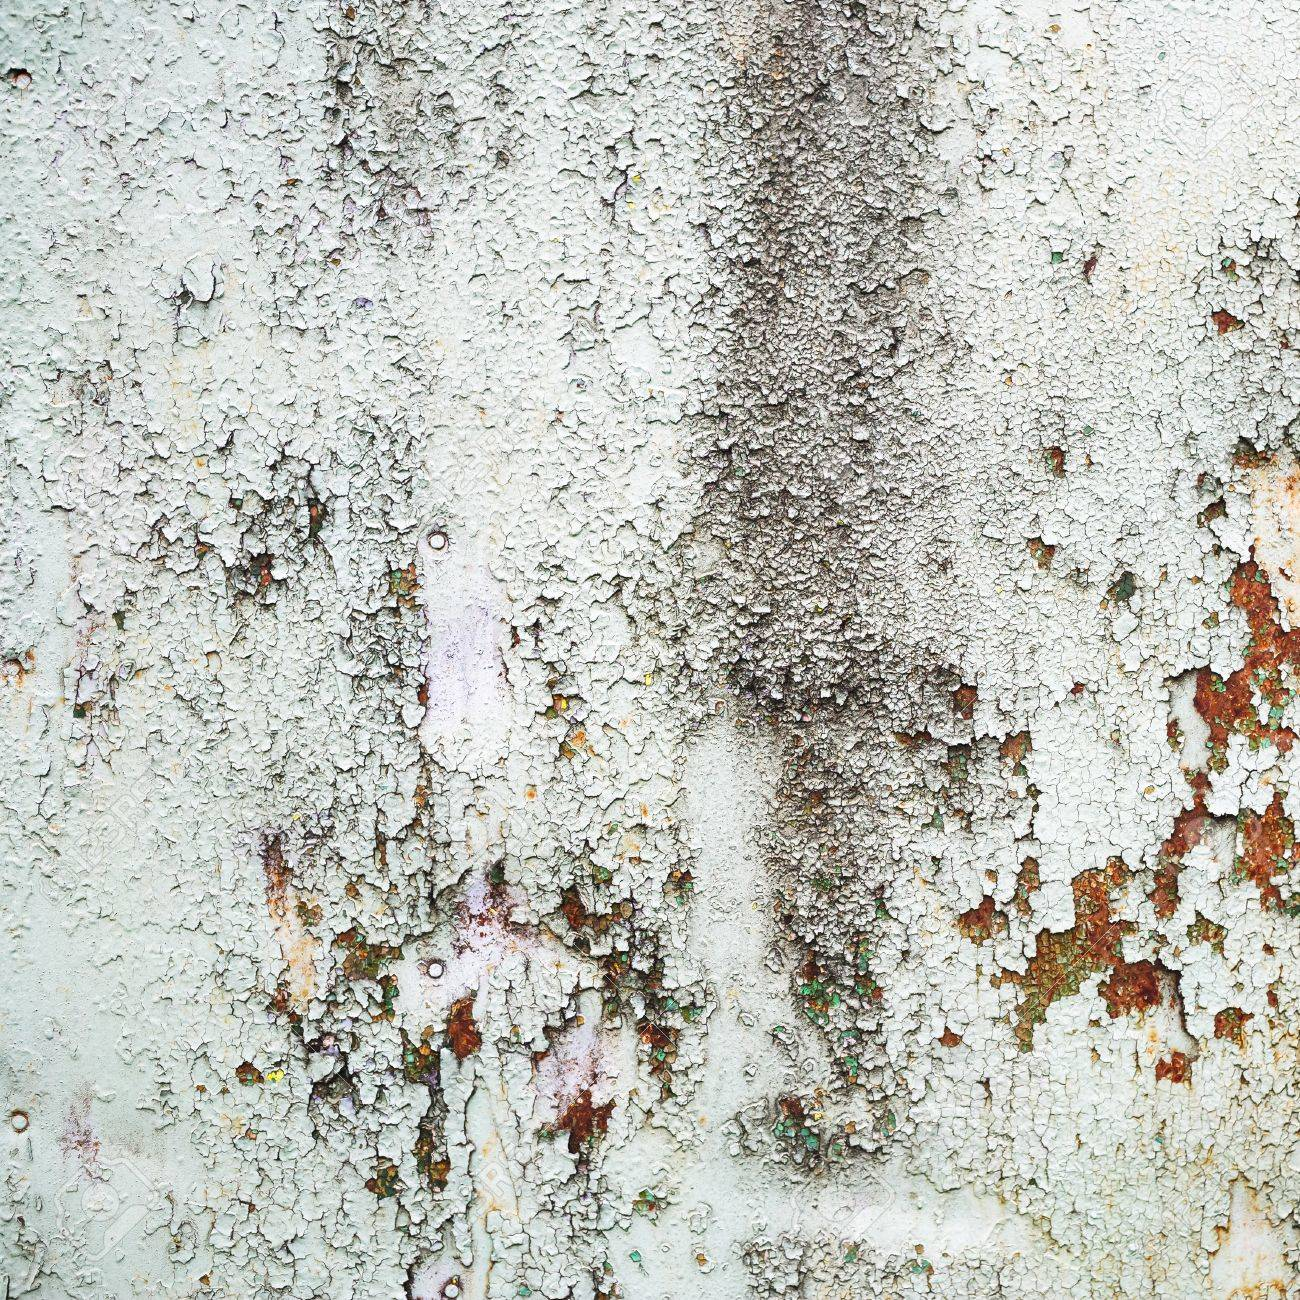 Rusty Painted Metal Surface Weathered Peeling Paint Texture Stock